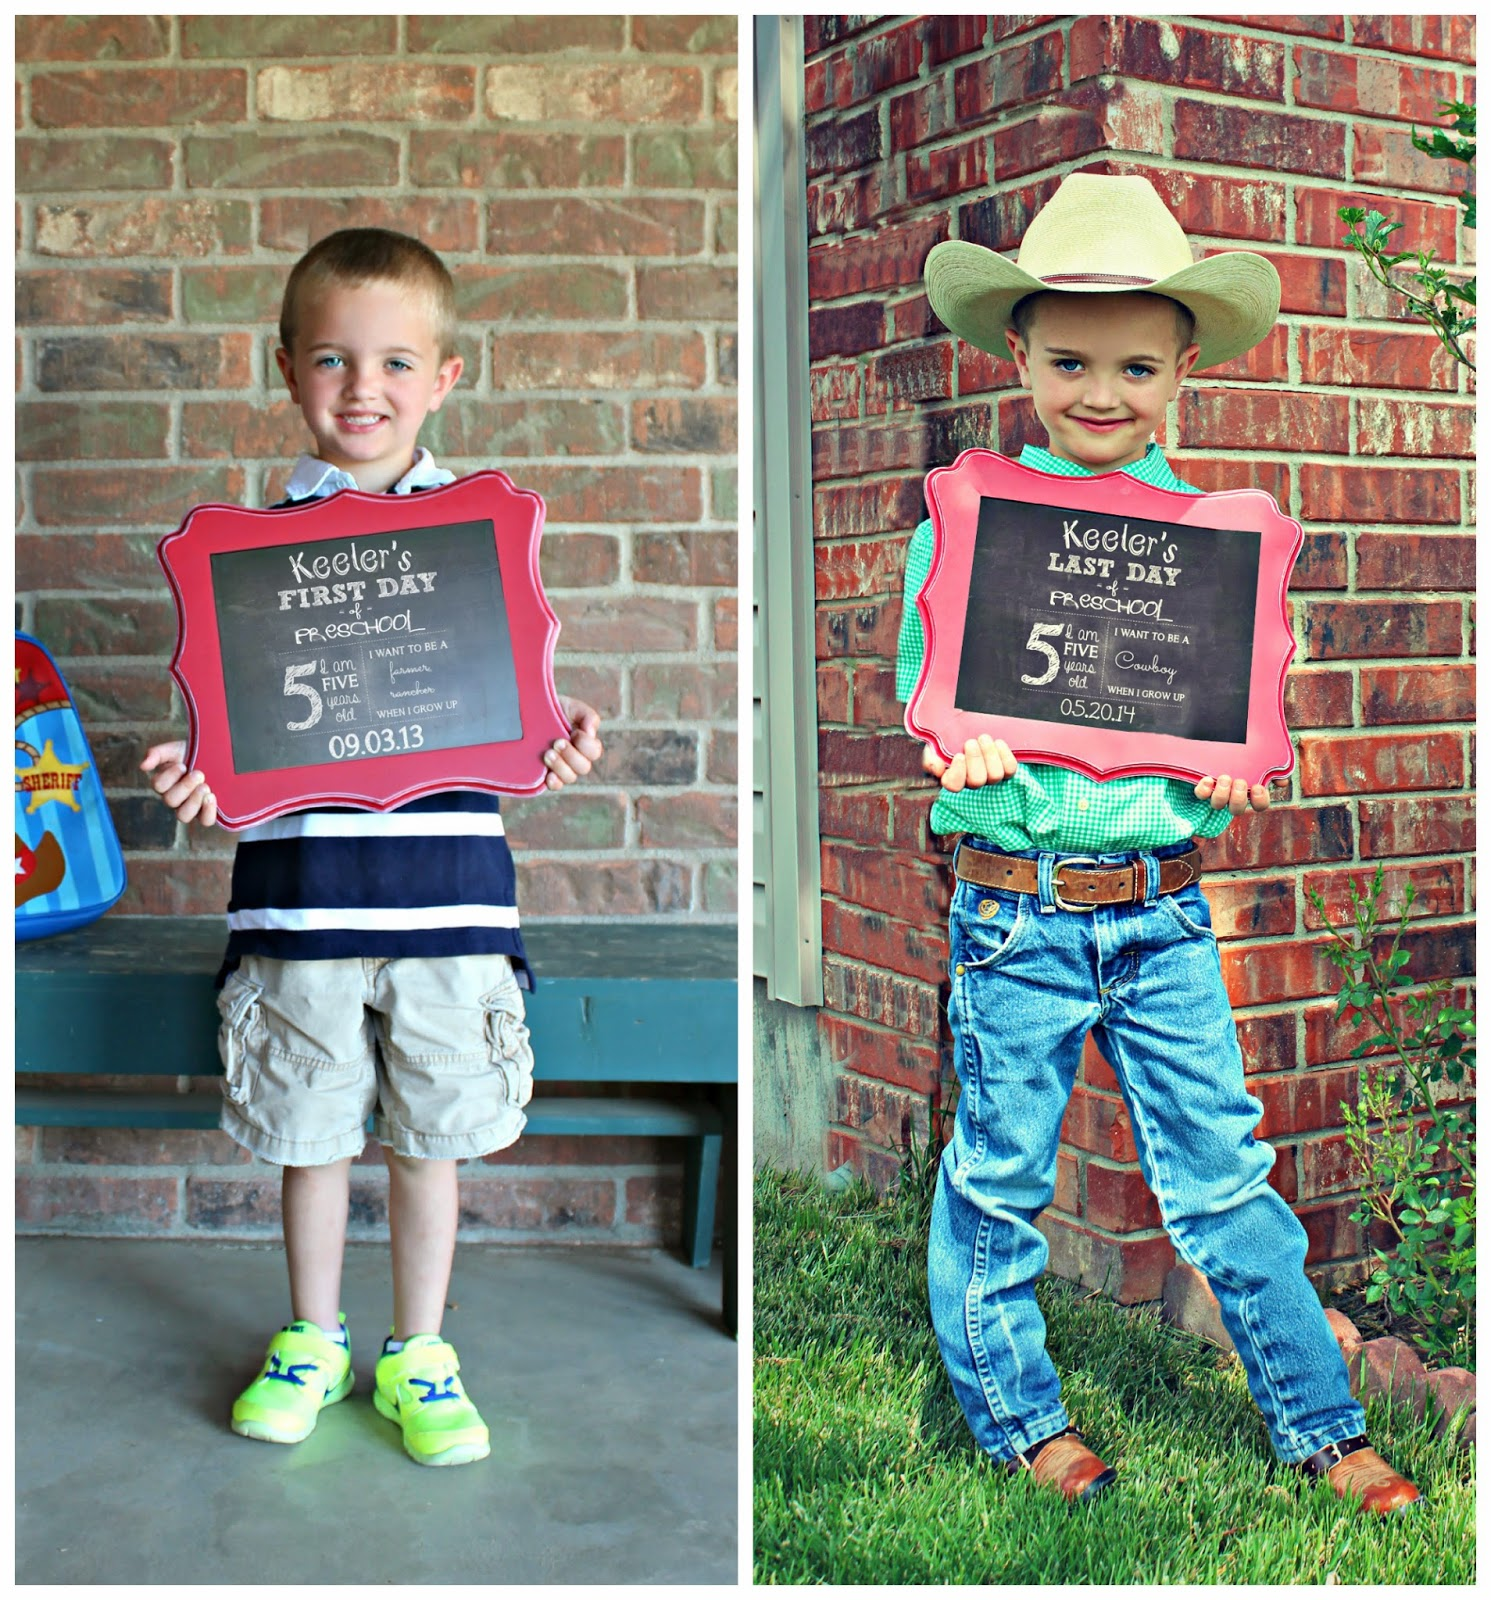 3 cowboys and a mommy: keeler's preschool graduation